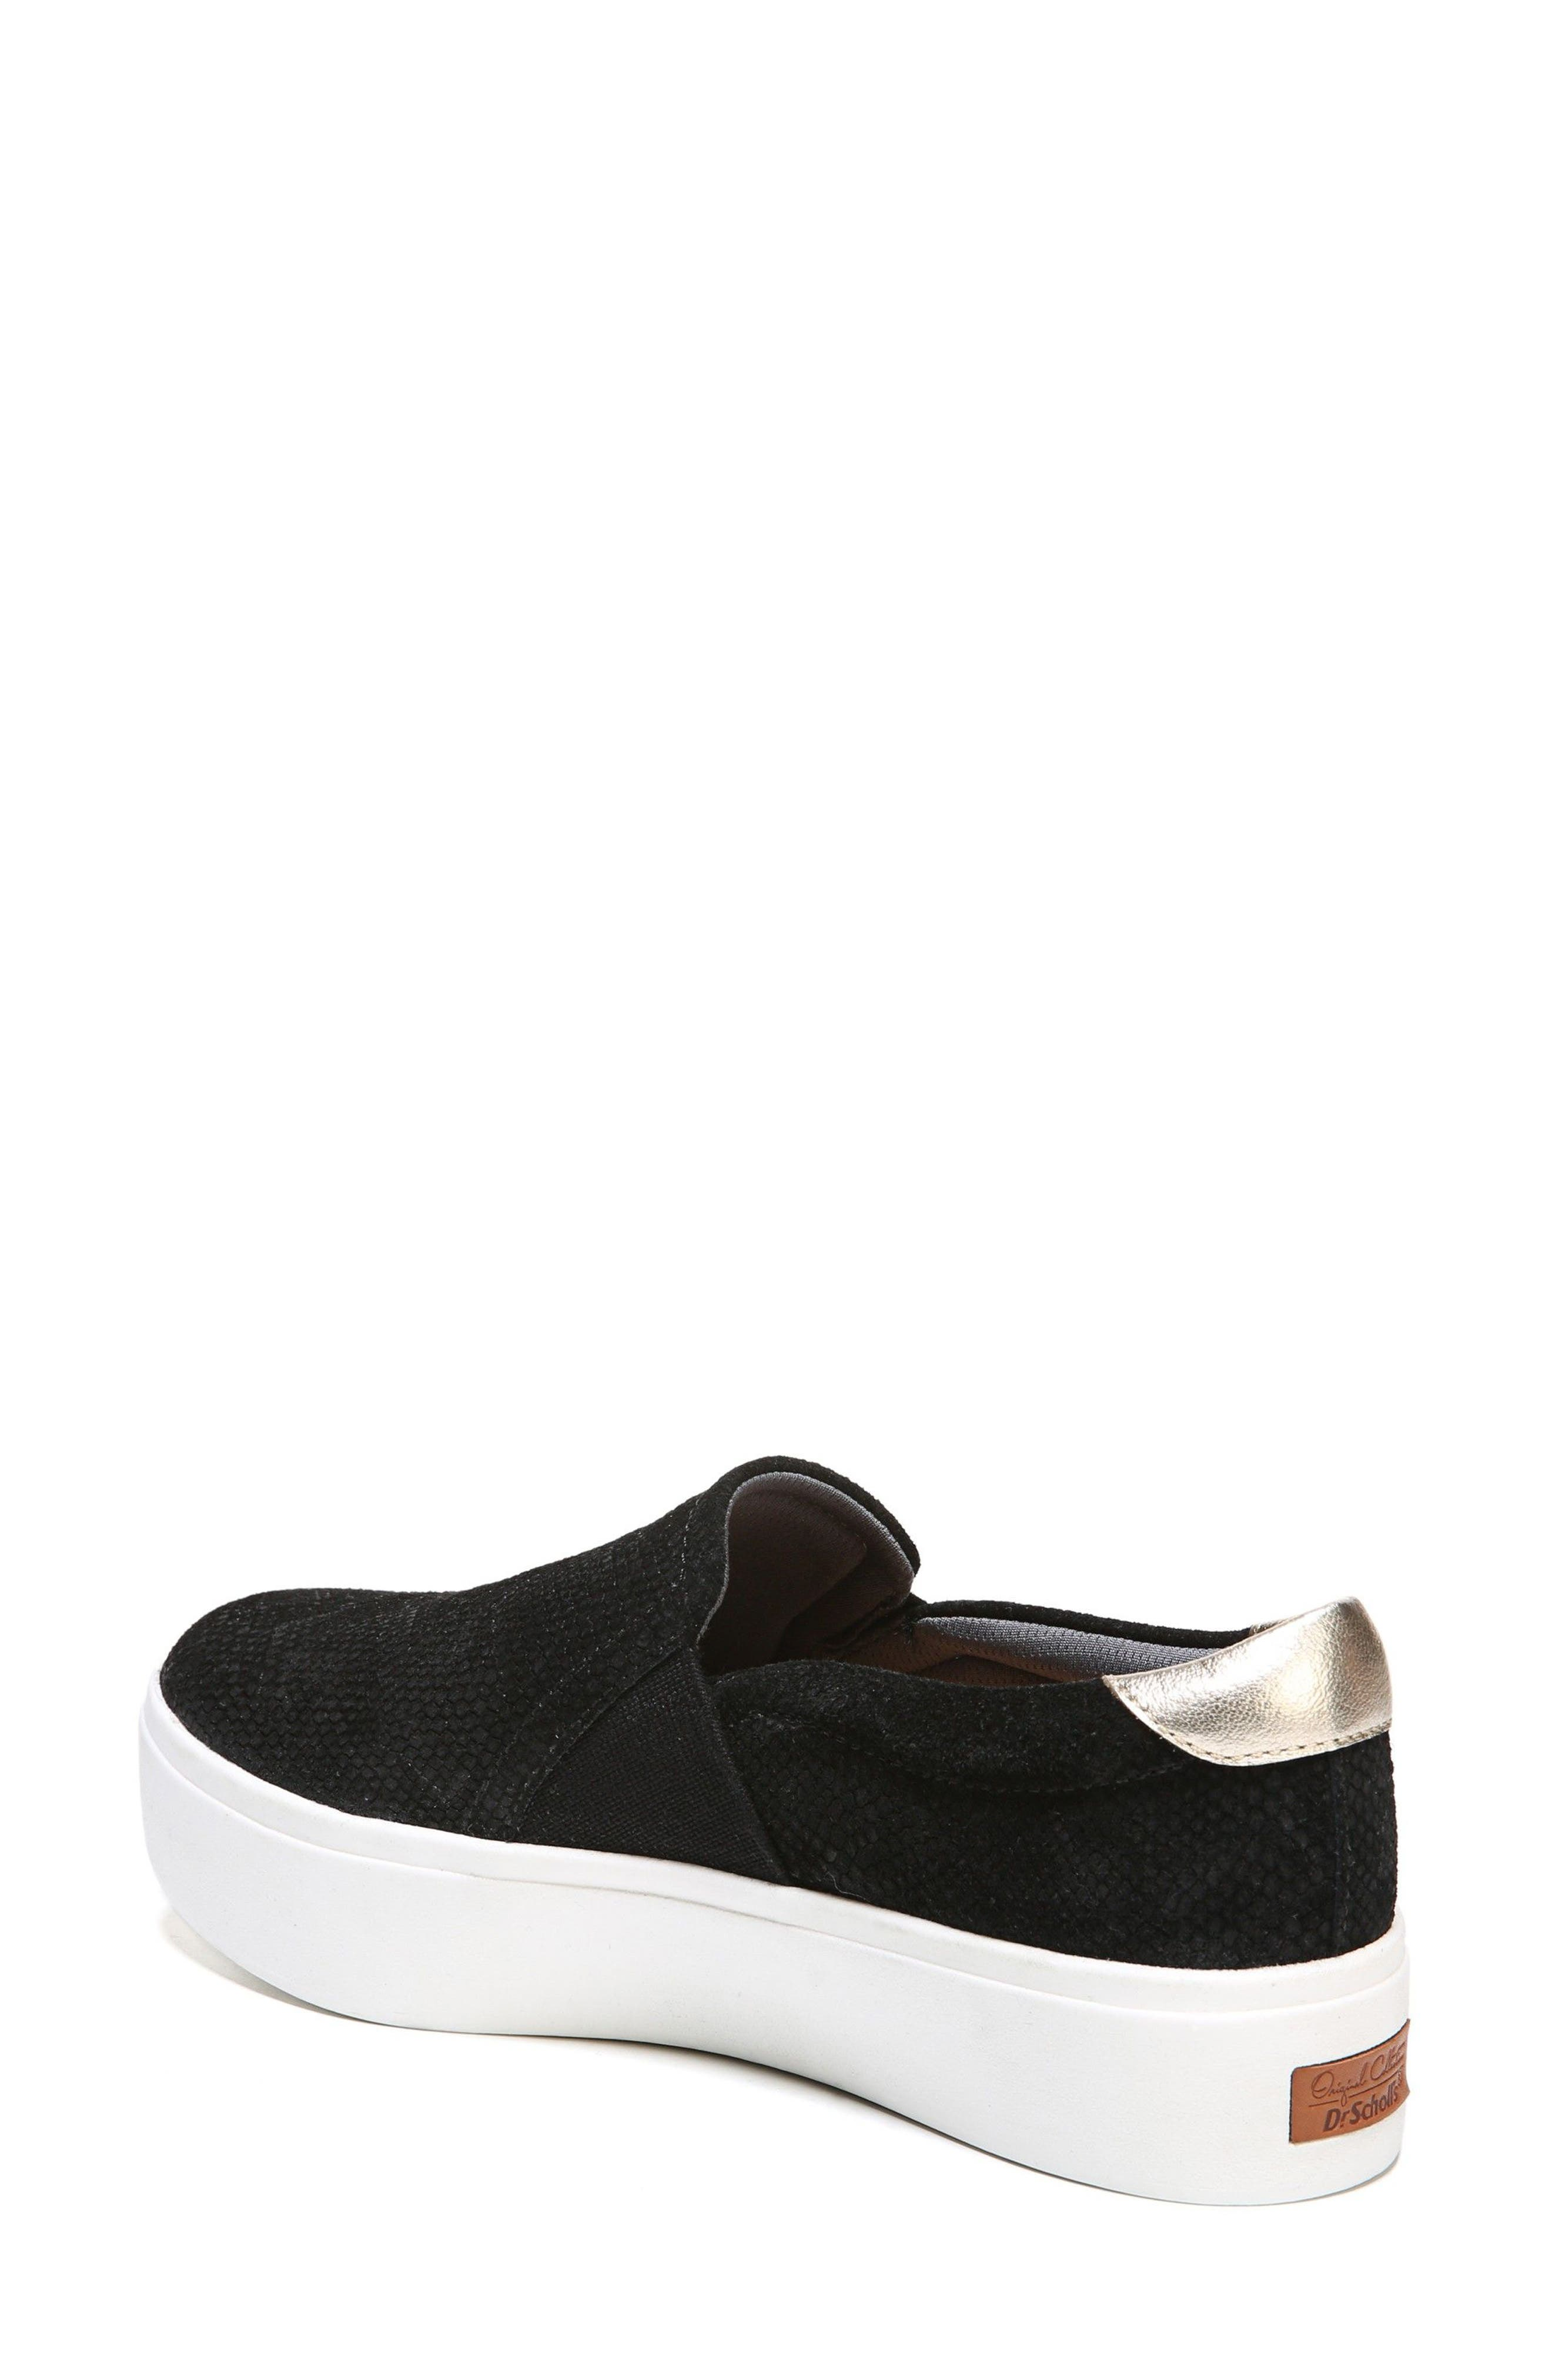 DR. SCHOLL'S, Abbot Slip-On Sneaker, Alternate thumbnail 2, color, BLACK SUEDE